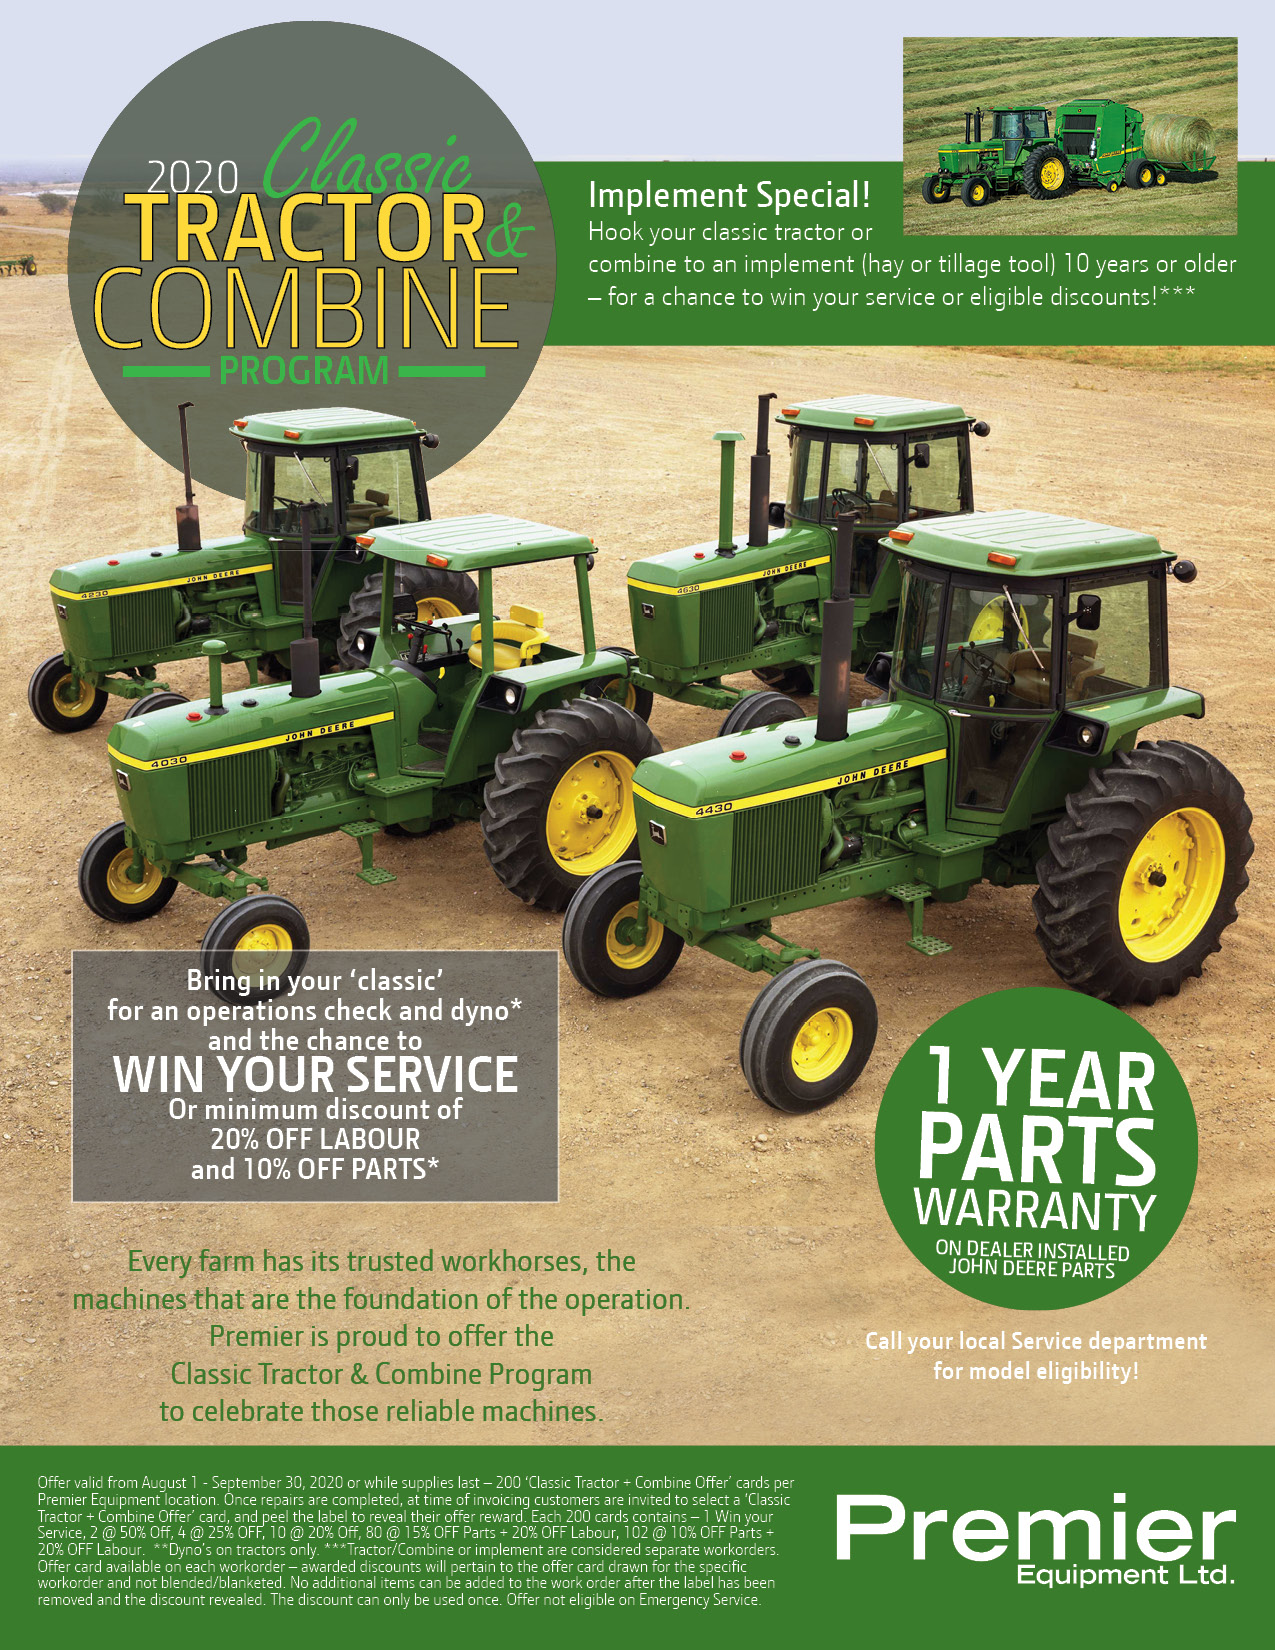 Classic Tractor and Combine Program